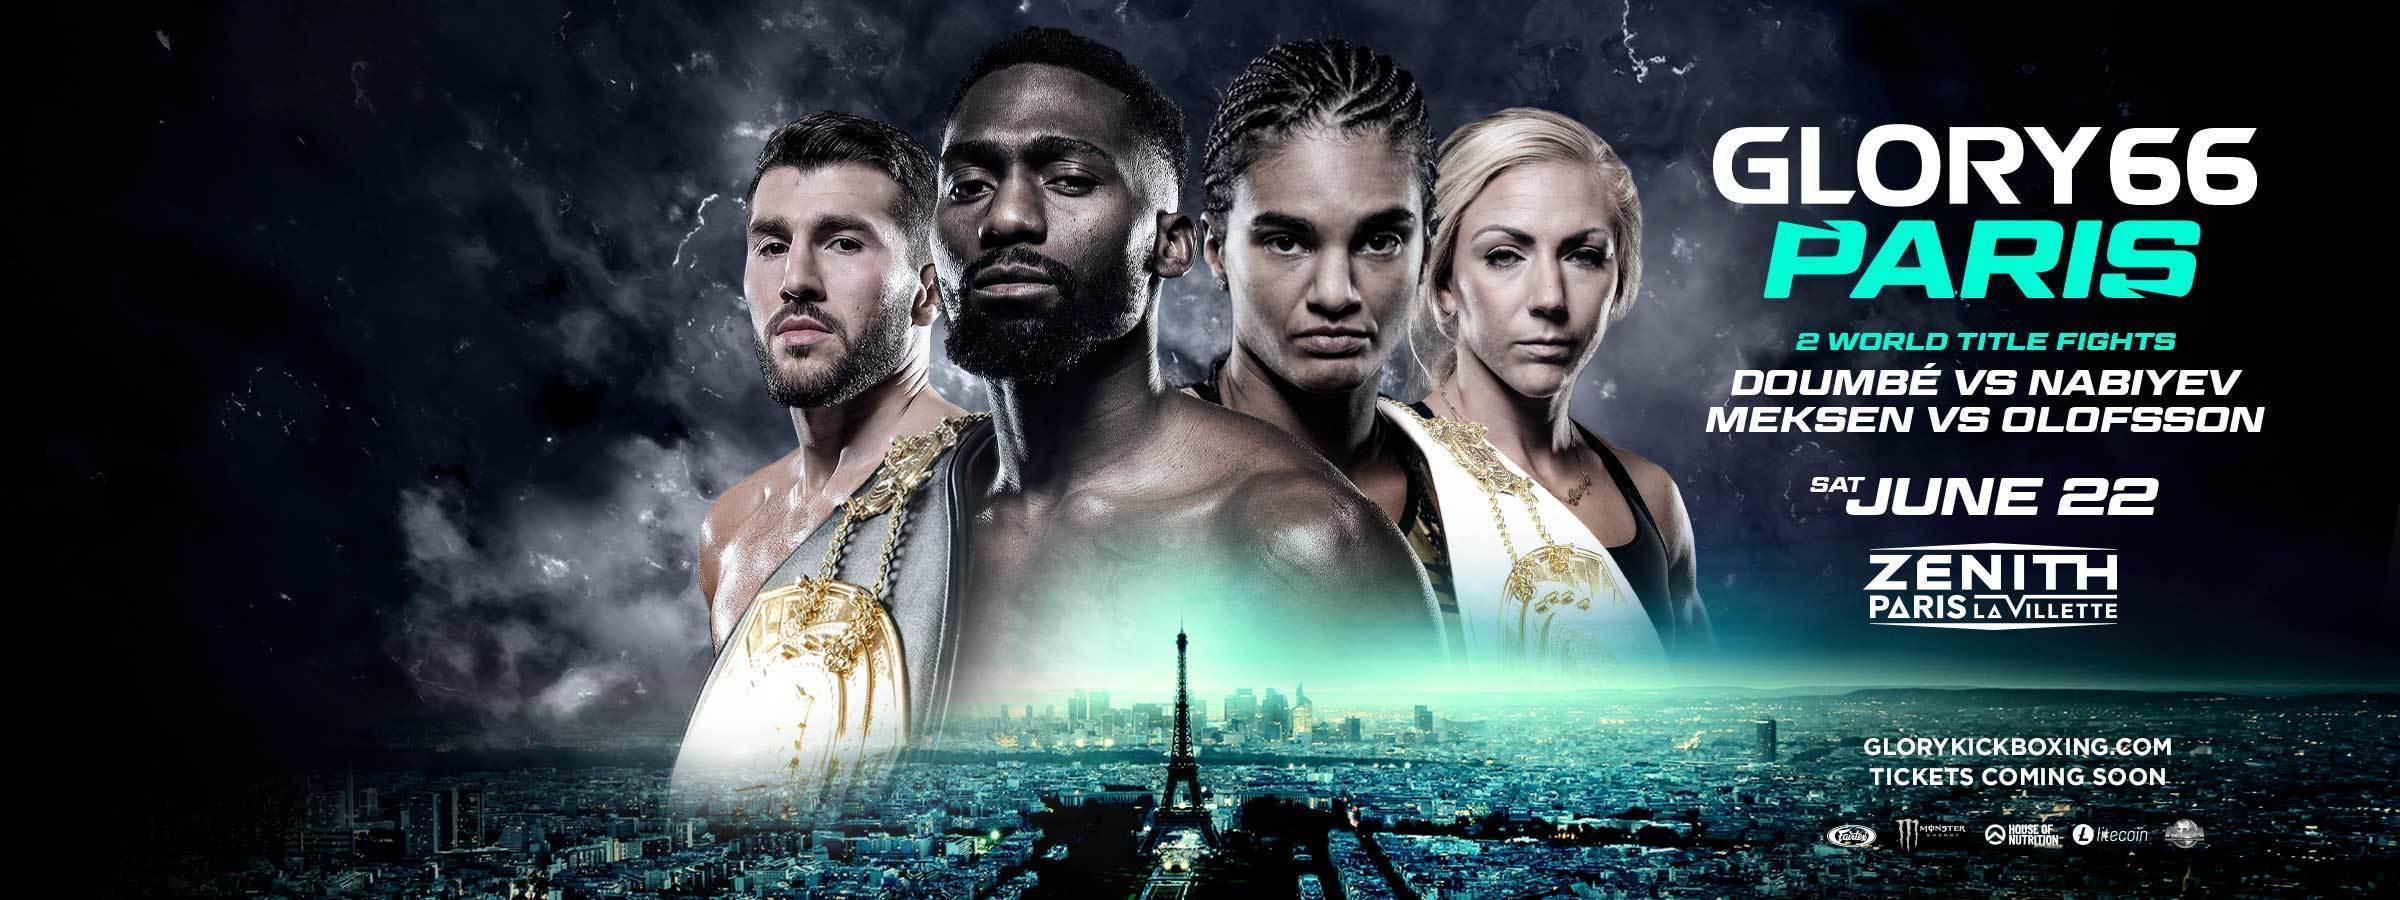 GLORY 66 Paris